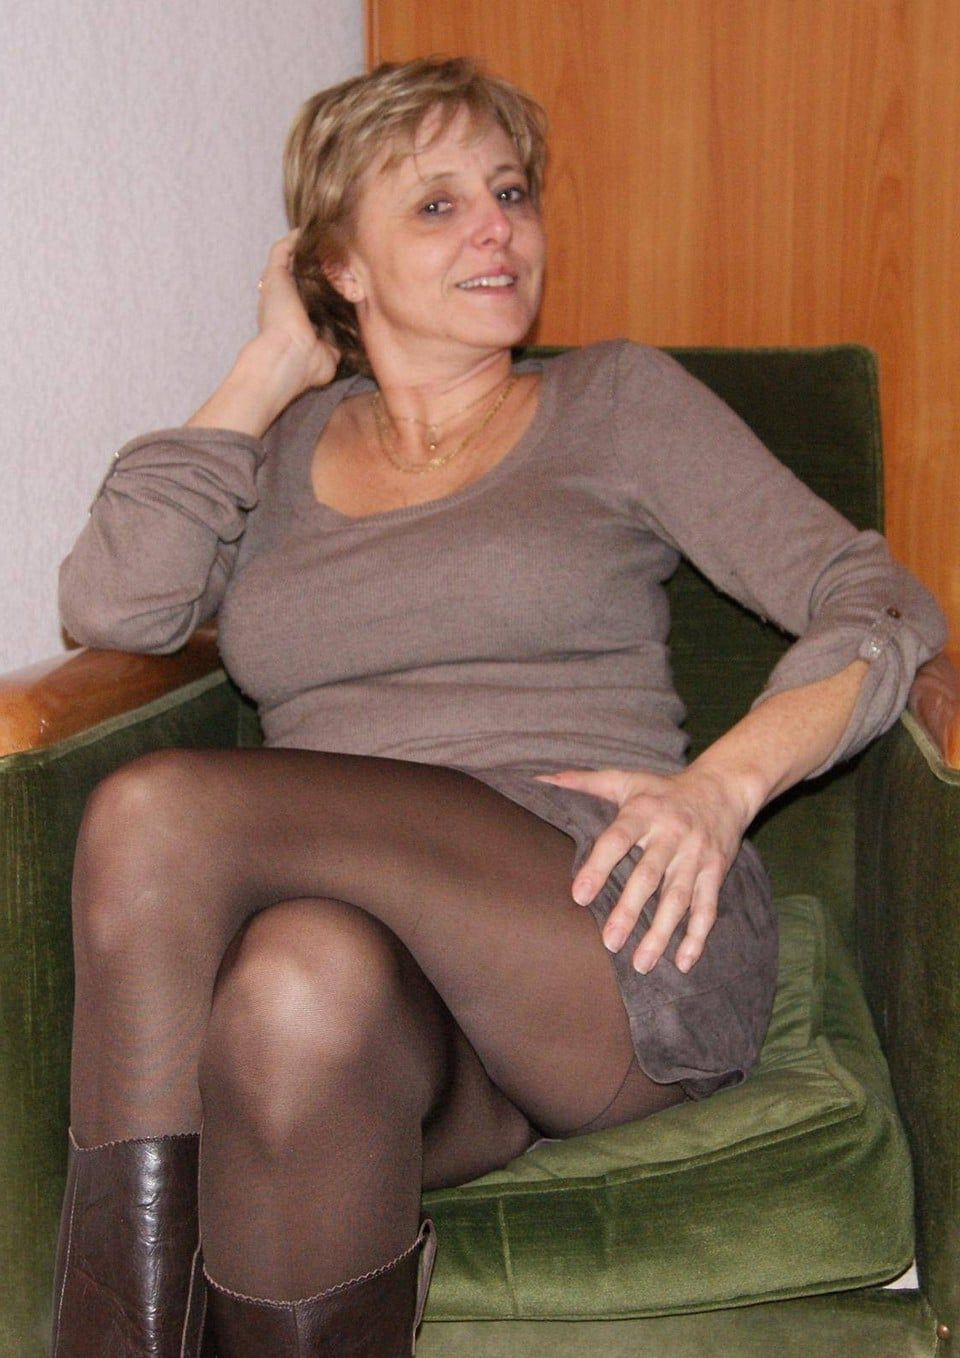 Asian France Free Porn free porn mature french - milf - hot photos